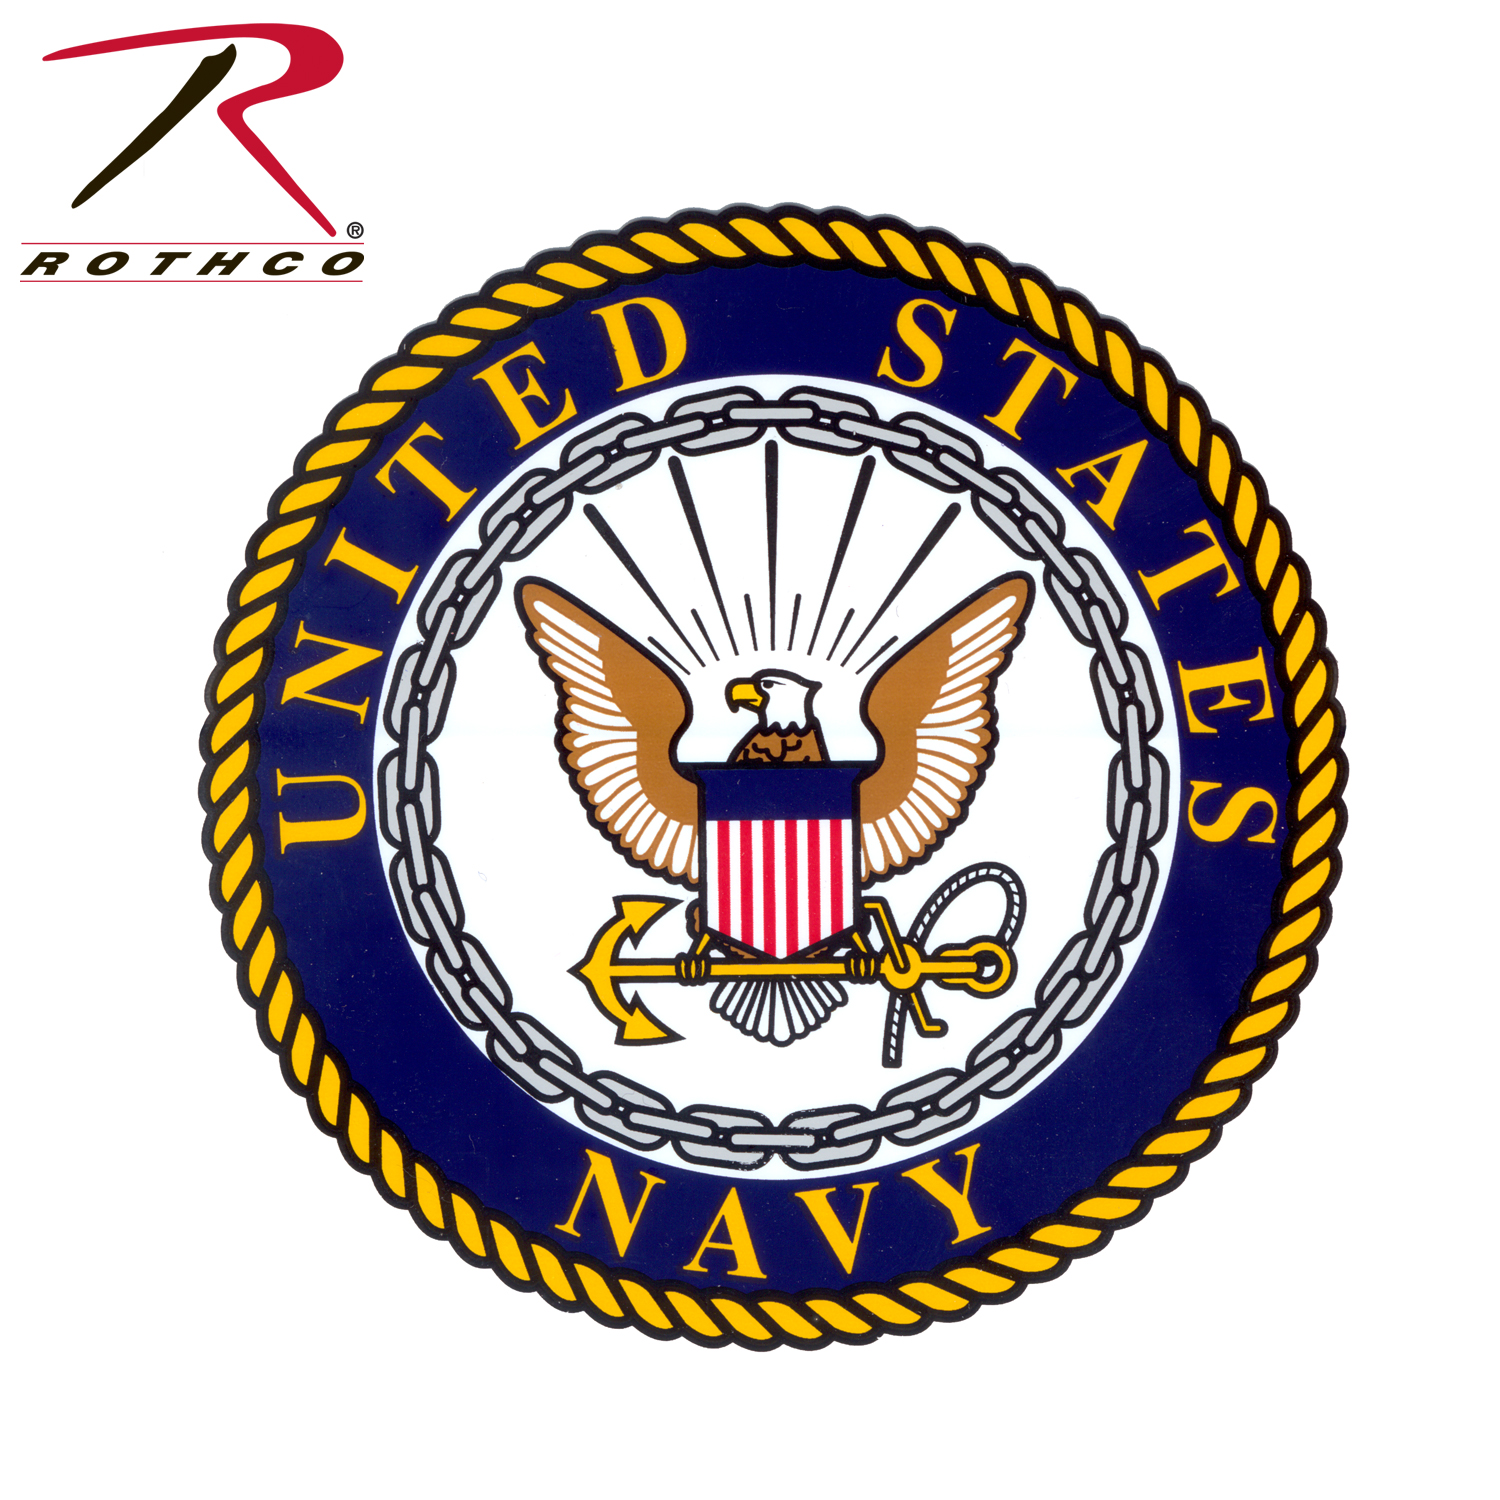 Rothco us navy seal decal us navy seal decals loading zoom biocorpaavc